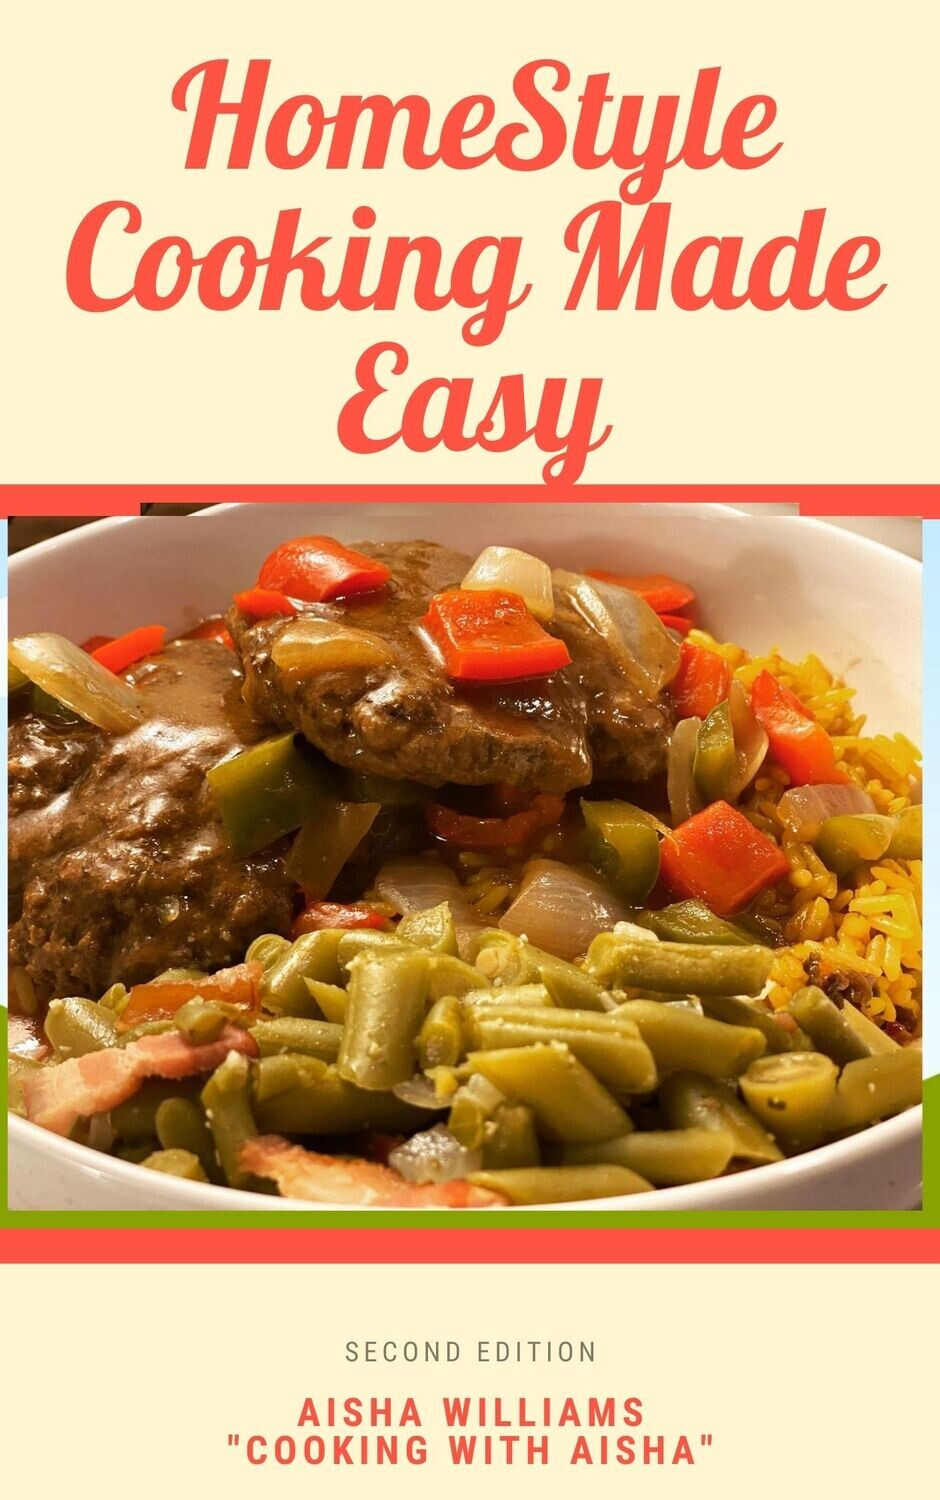 PREORDER TODAY ****Home Style Cooking Made Easy - 2nd Edition - INSERTS ONLY****